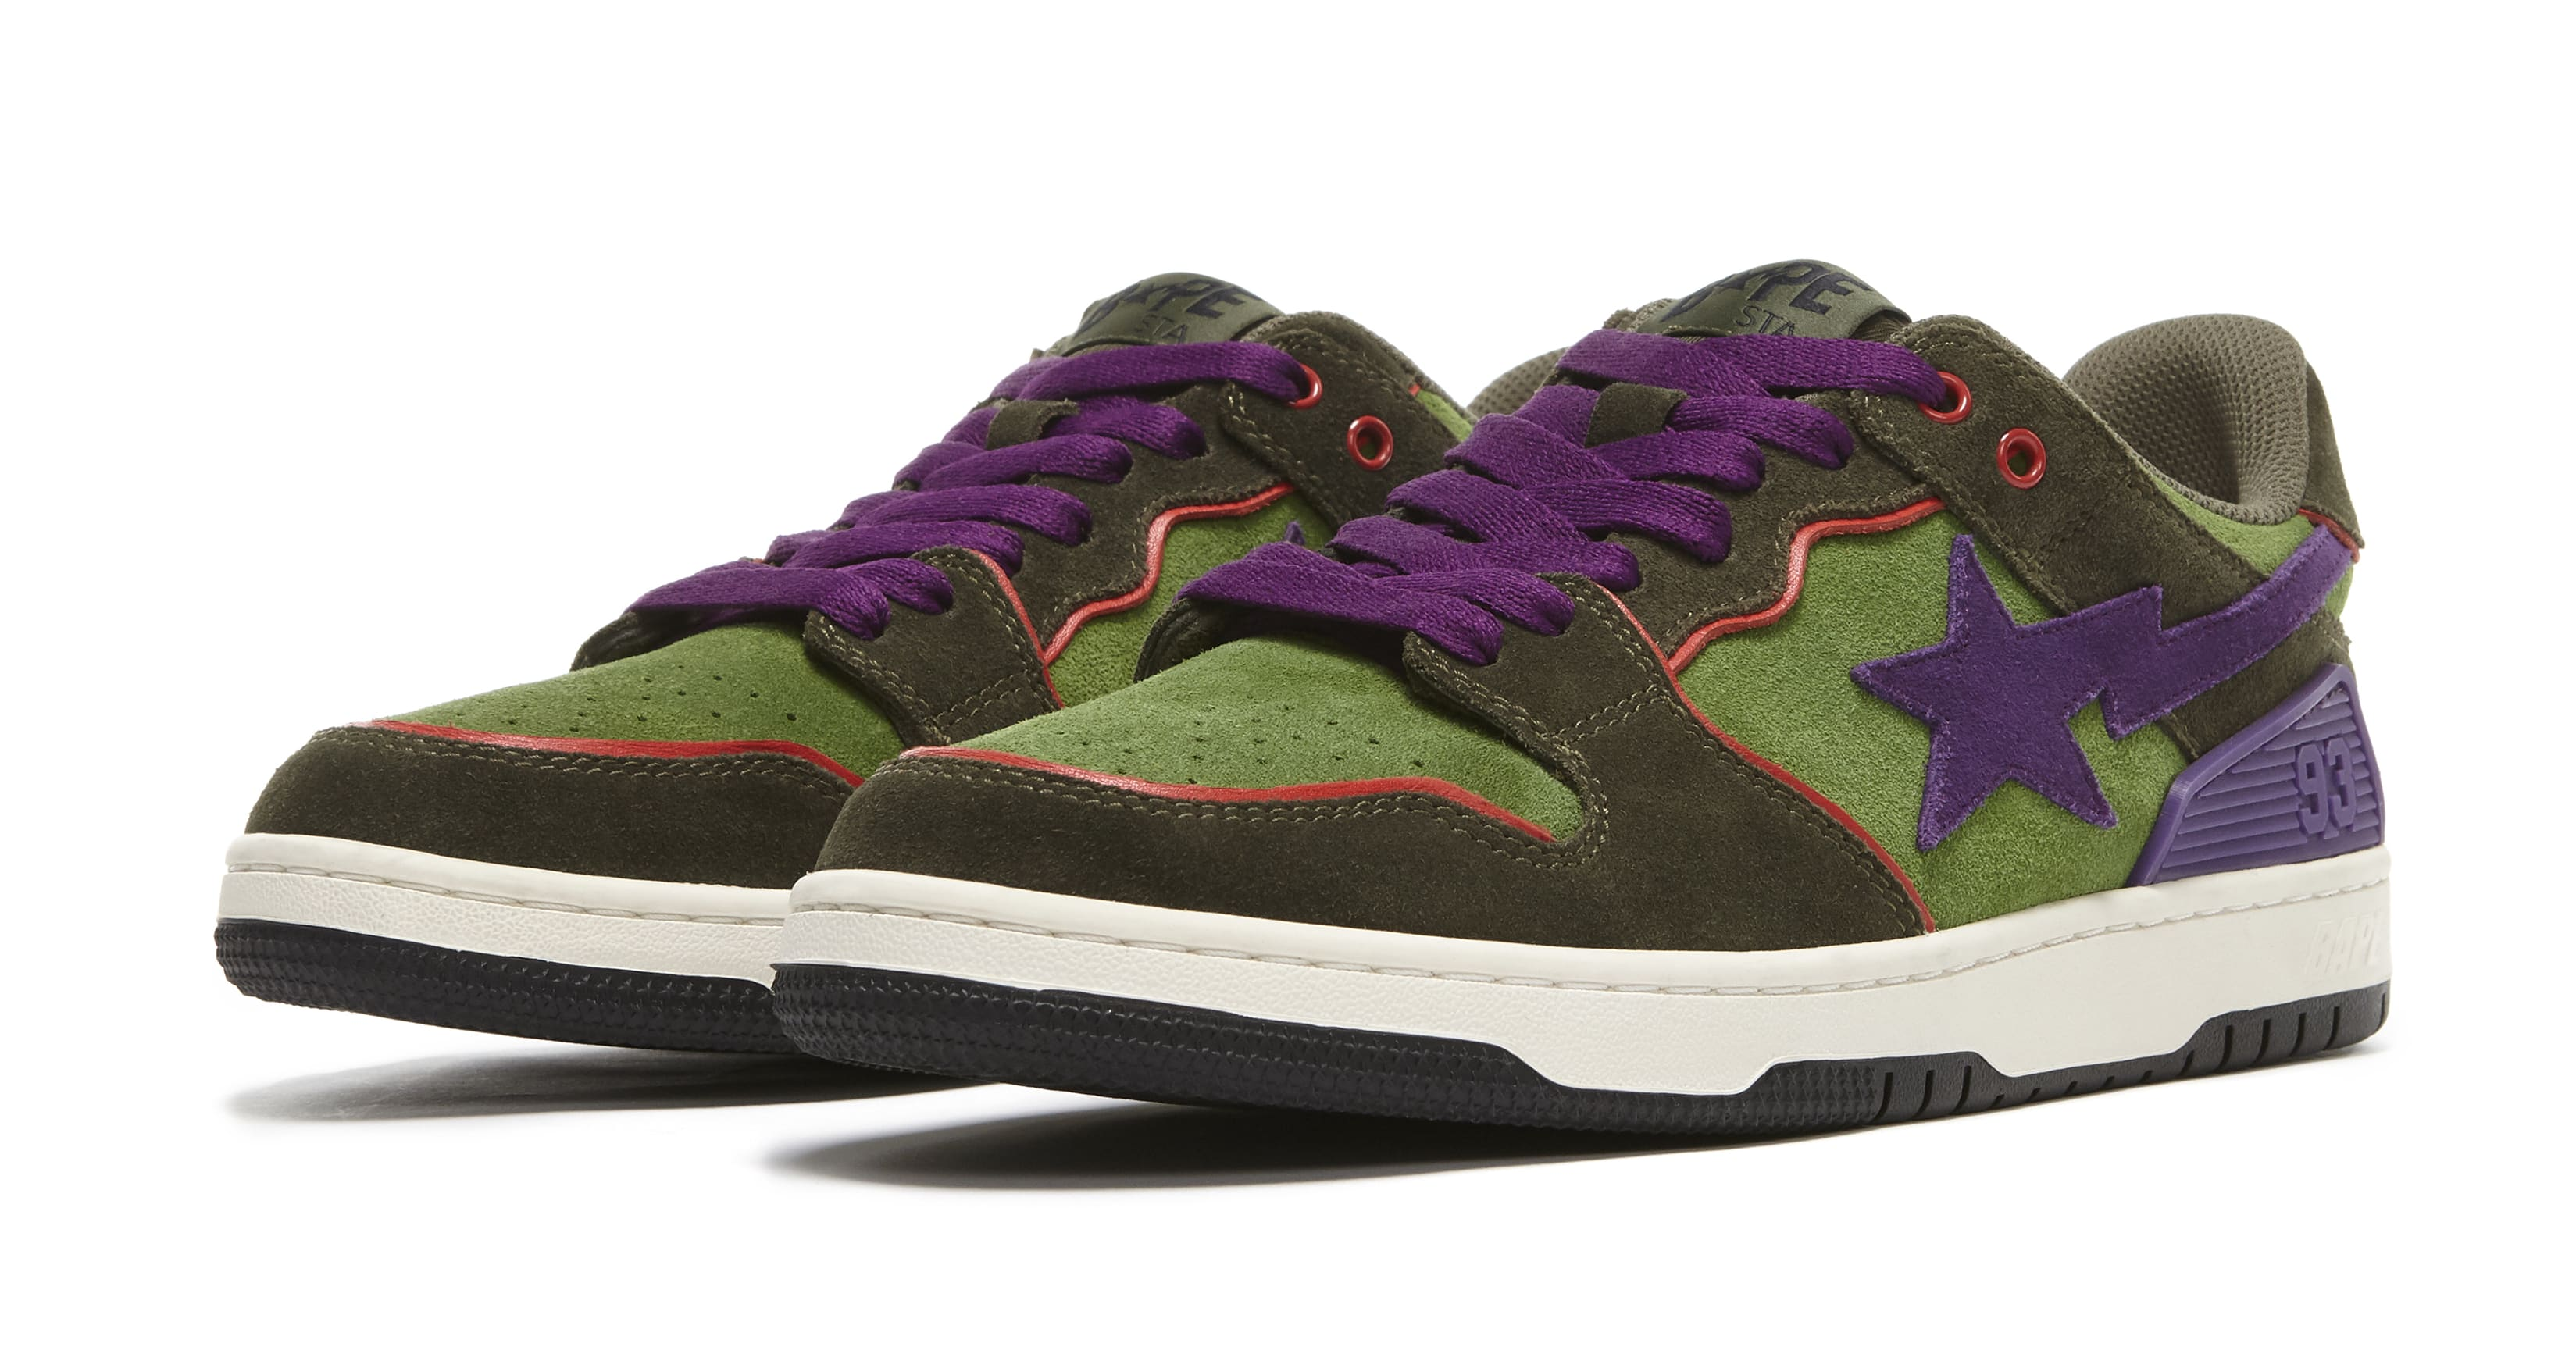 Bape Sk8 Sta Dark Purple and Green Pair